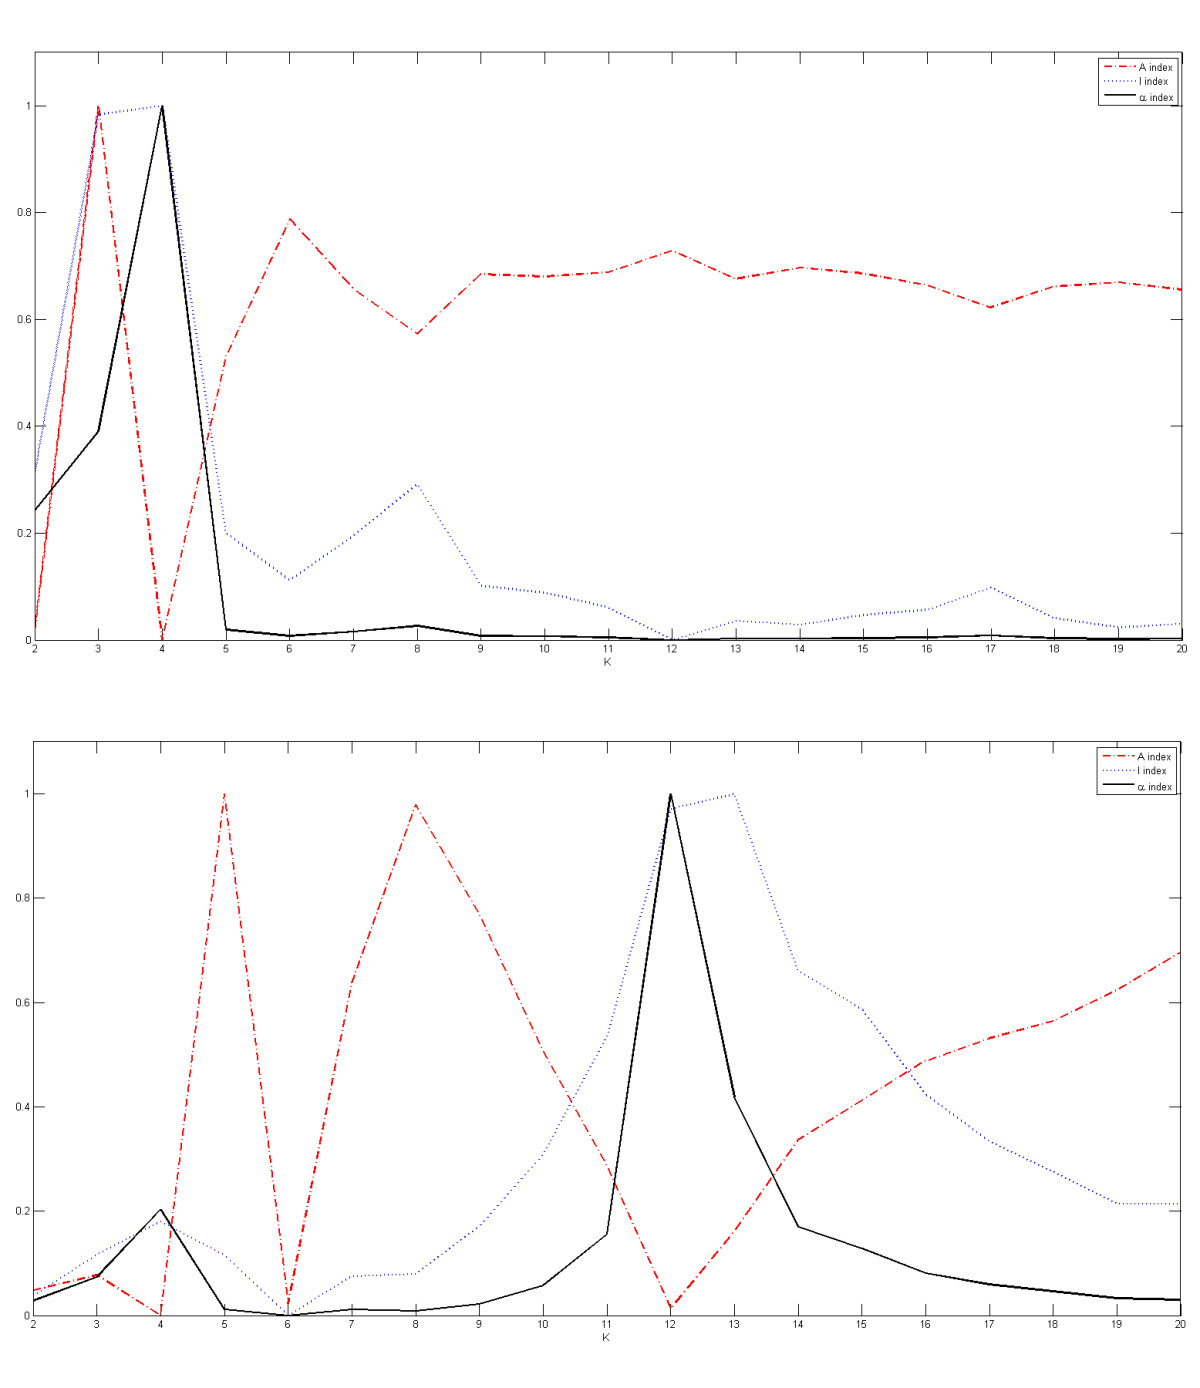 https://static-content.springer.com/image/art%3A10.1186%2F1471-2105-12-113/MediaObjects/12859_2010_Article_4507_Fig6_HTML.jpg